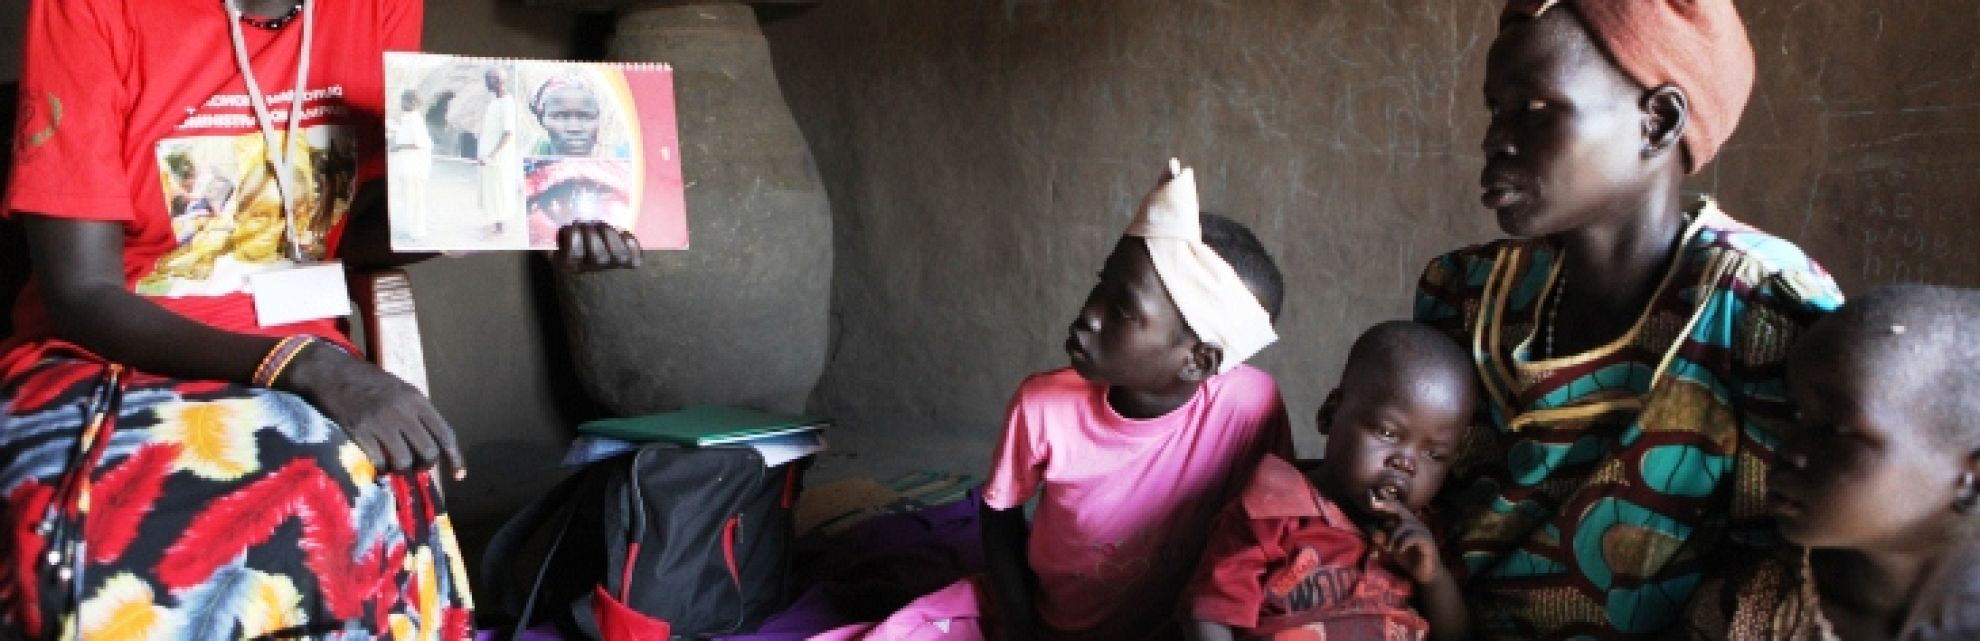 Latest News House of lords debate on neglected tropical diseases